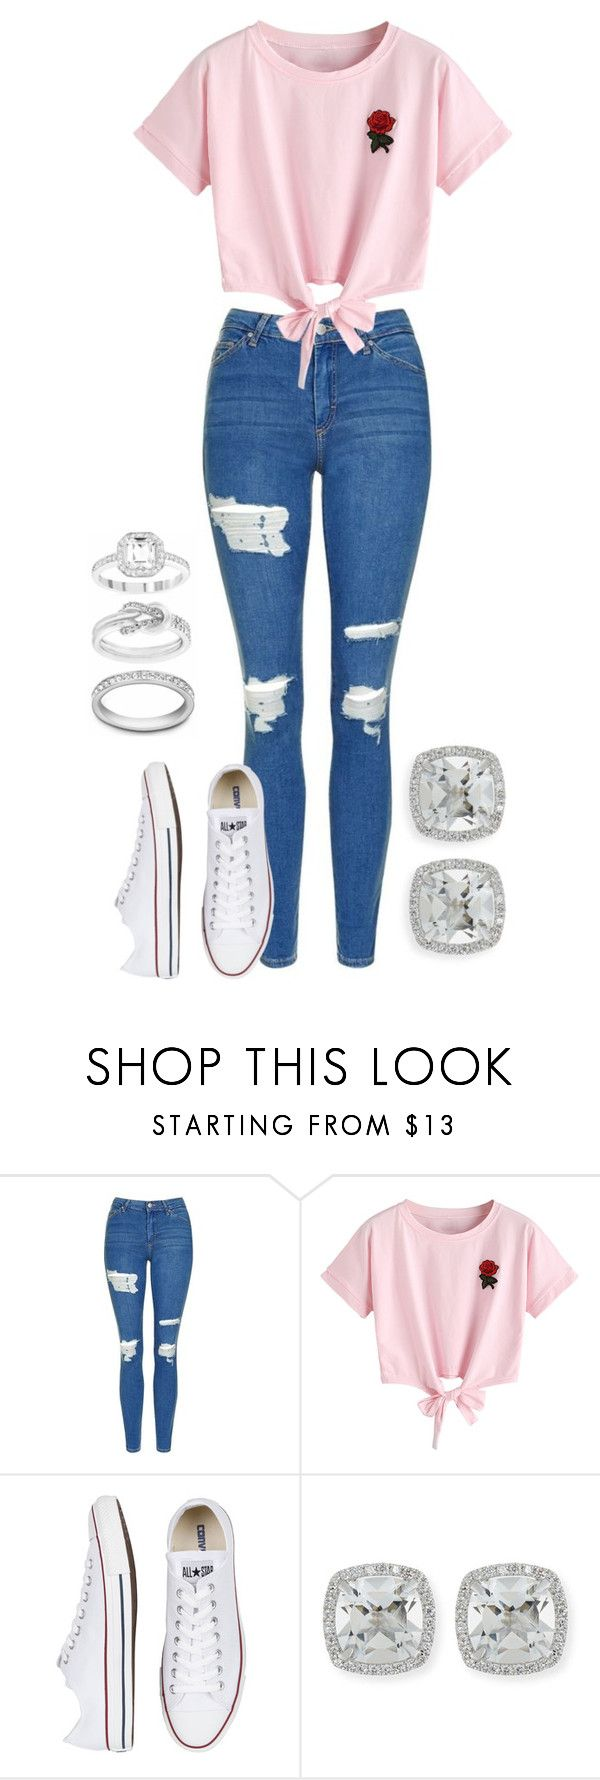 """Salida❤️"" by ale30rmz ❤ liked on Polyvore featuring Topshop, WithChic, Converse and Frederic Sage"